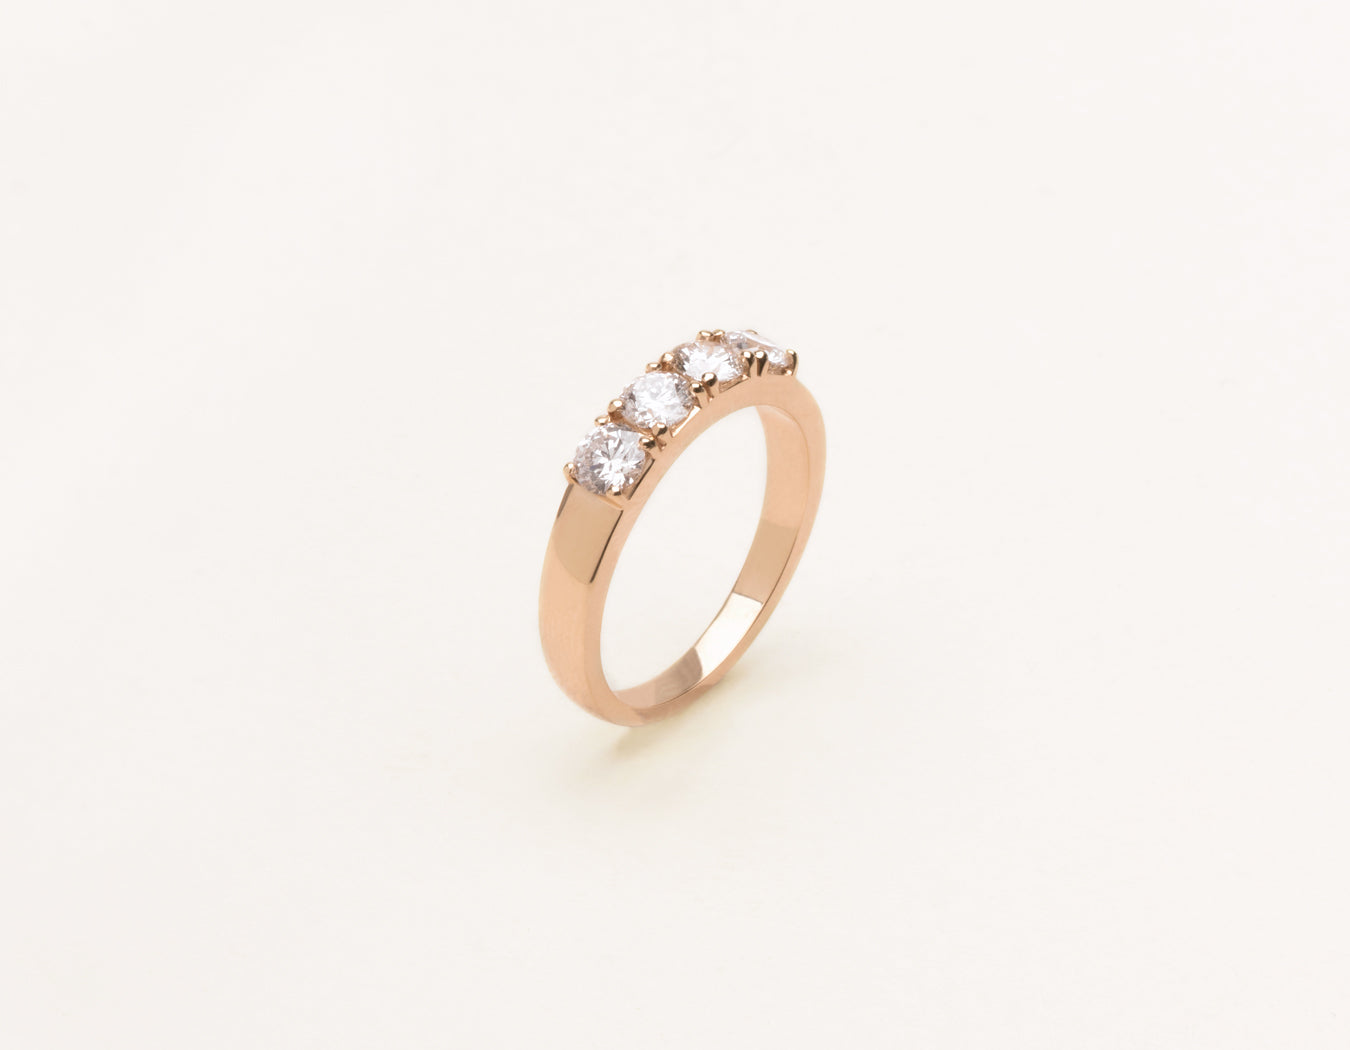 Vrai & Oro Modern Round Brilliant Cut Diamond Tetrad Band in 14k solid rose gold